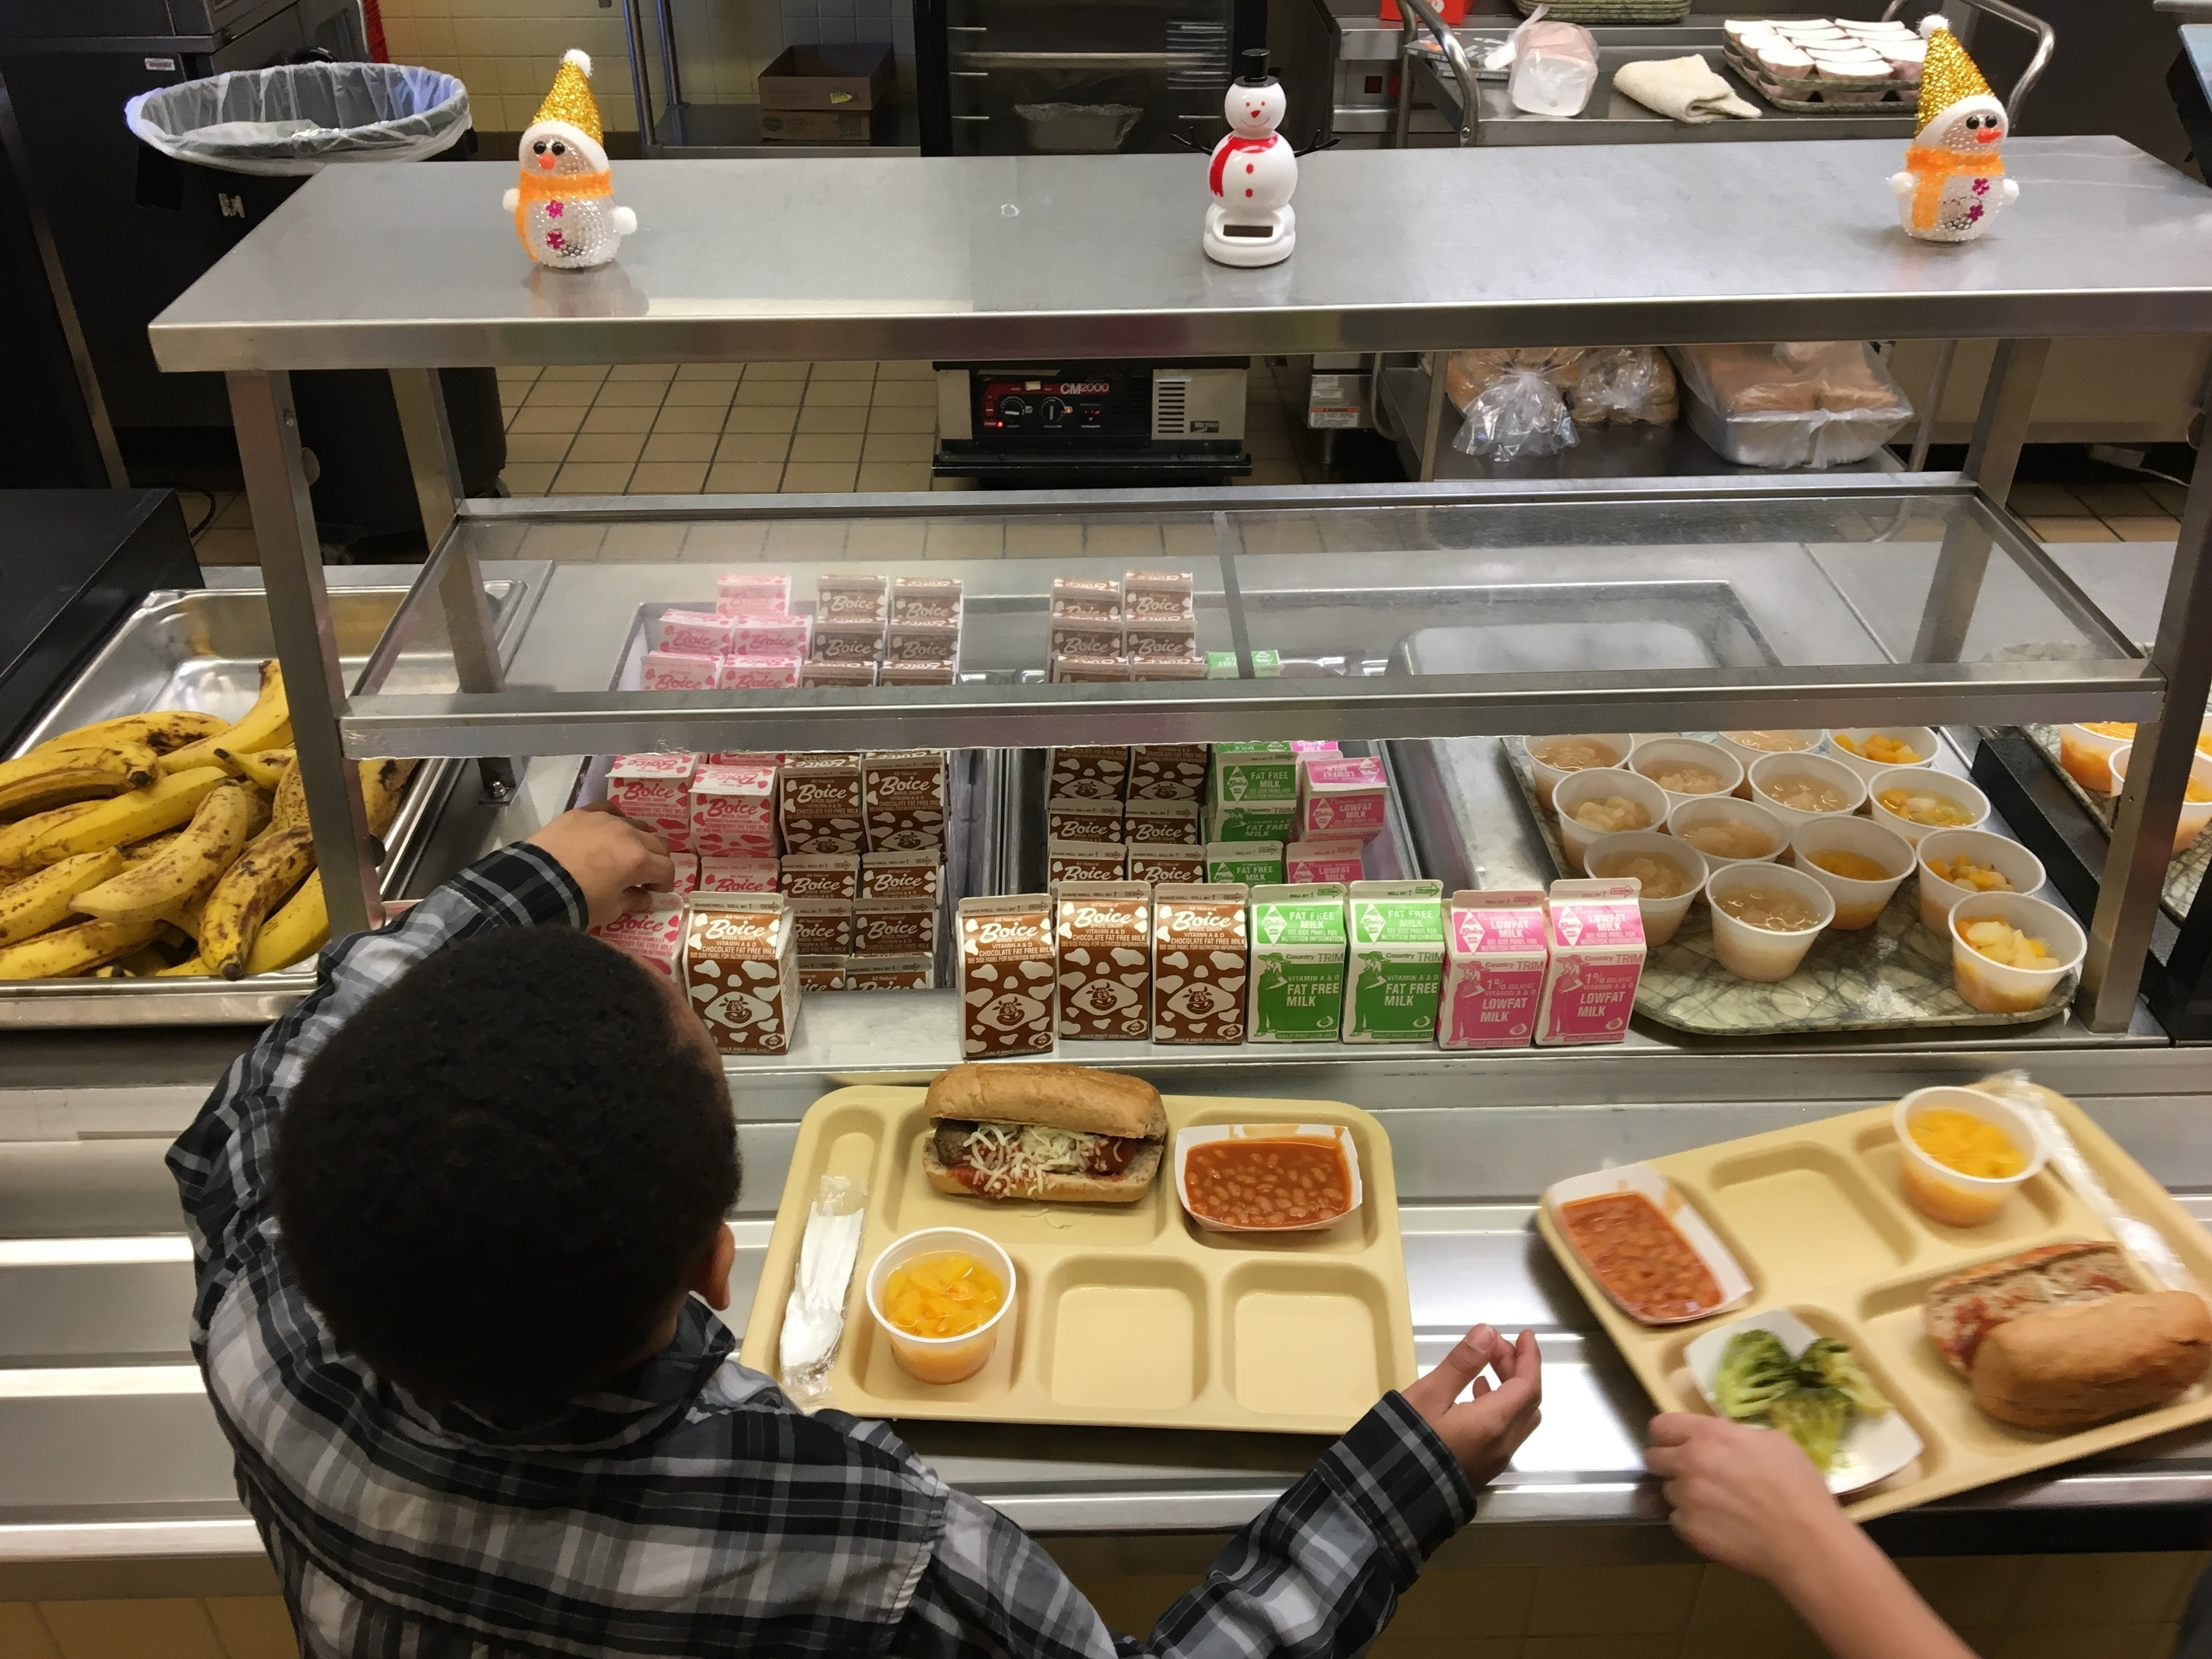 Students in New York fill their lunch trays with hot food. In Rhode Island, a controversy over a plan to limit children to cold sandwiches if they had outstanding lunch balances was quickly reversed this week.